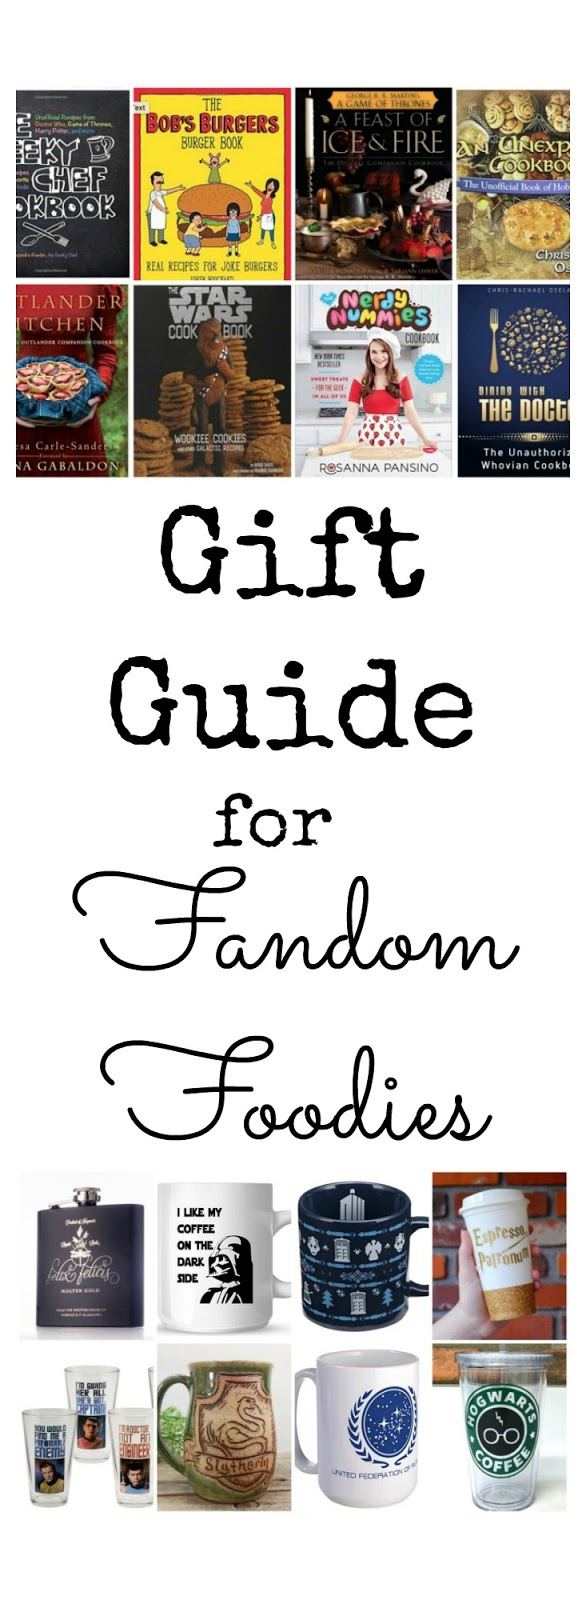 Gift Guide for Fandom Foodies